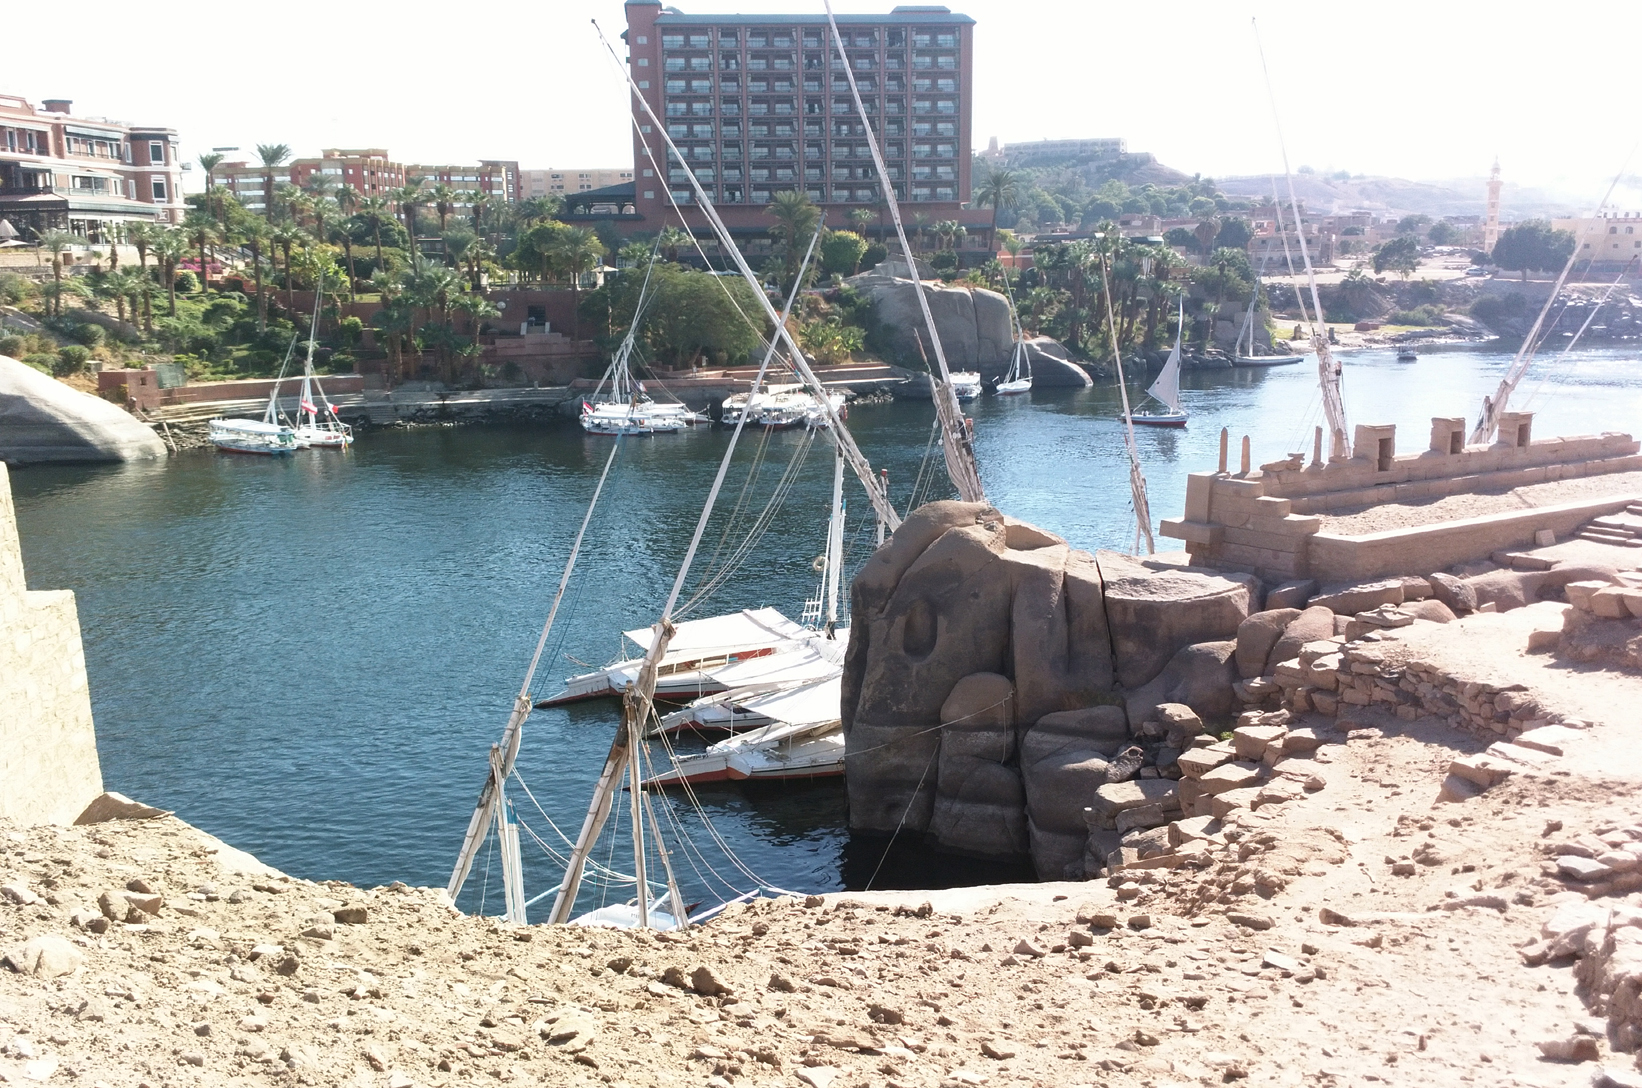 Excursion around Aswan's islands.